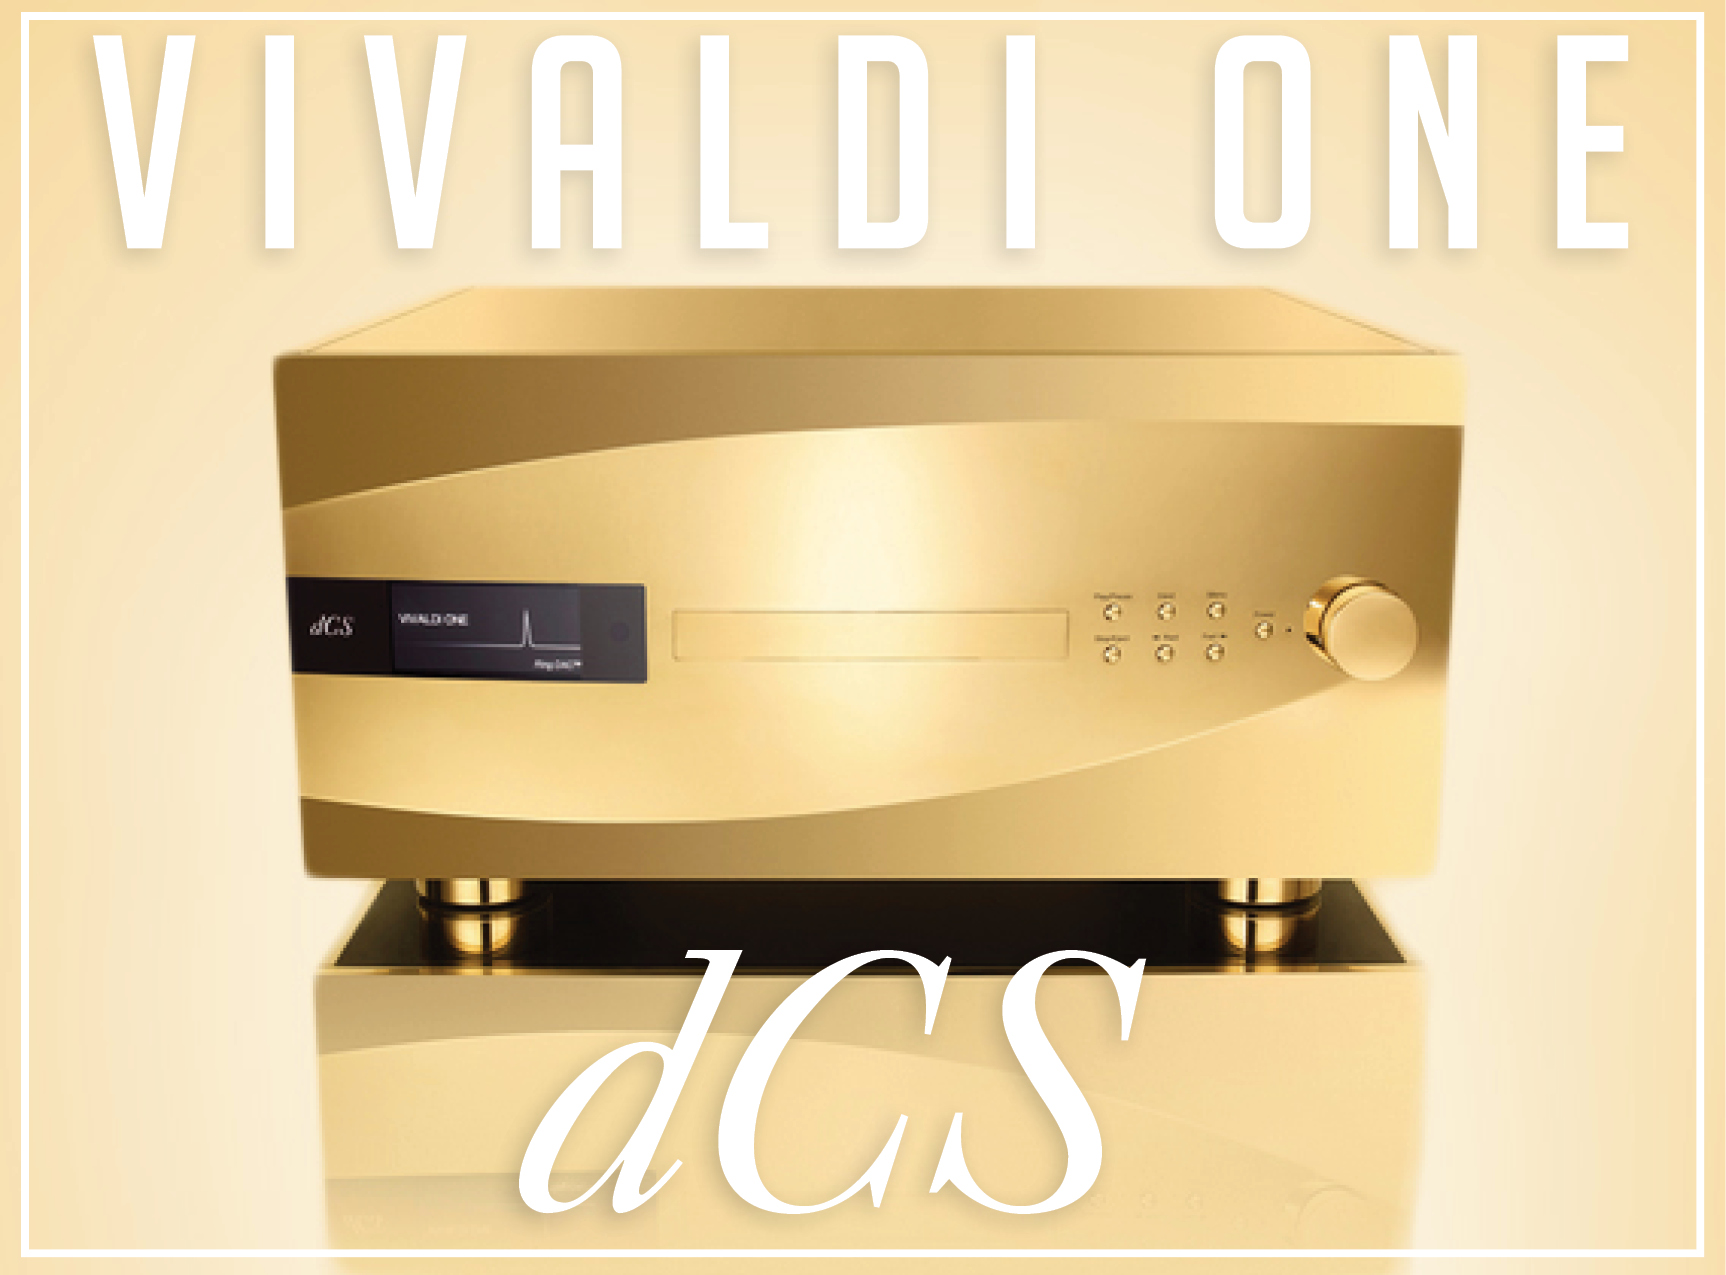 dCS celebrates their 30th Anniversary with the Limited Edition Vivaldi One